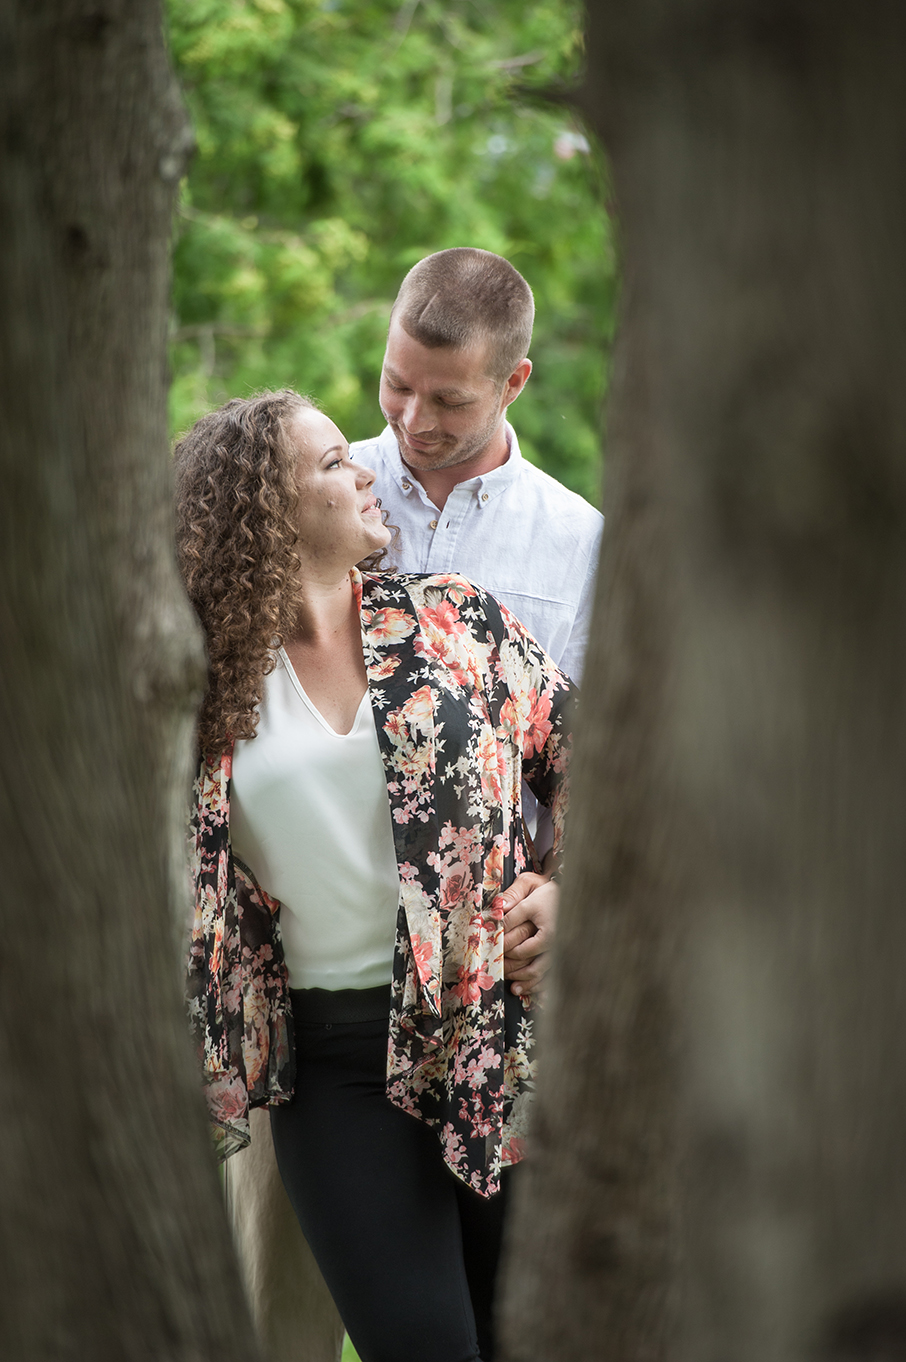 Holly&Rob_EngagementSession-37.jpg